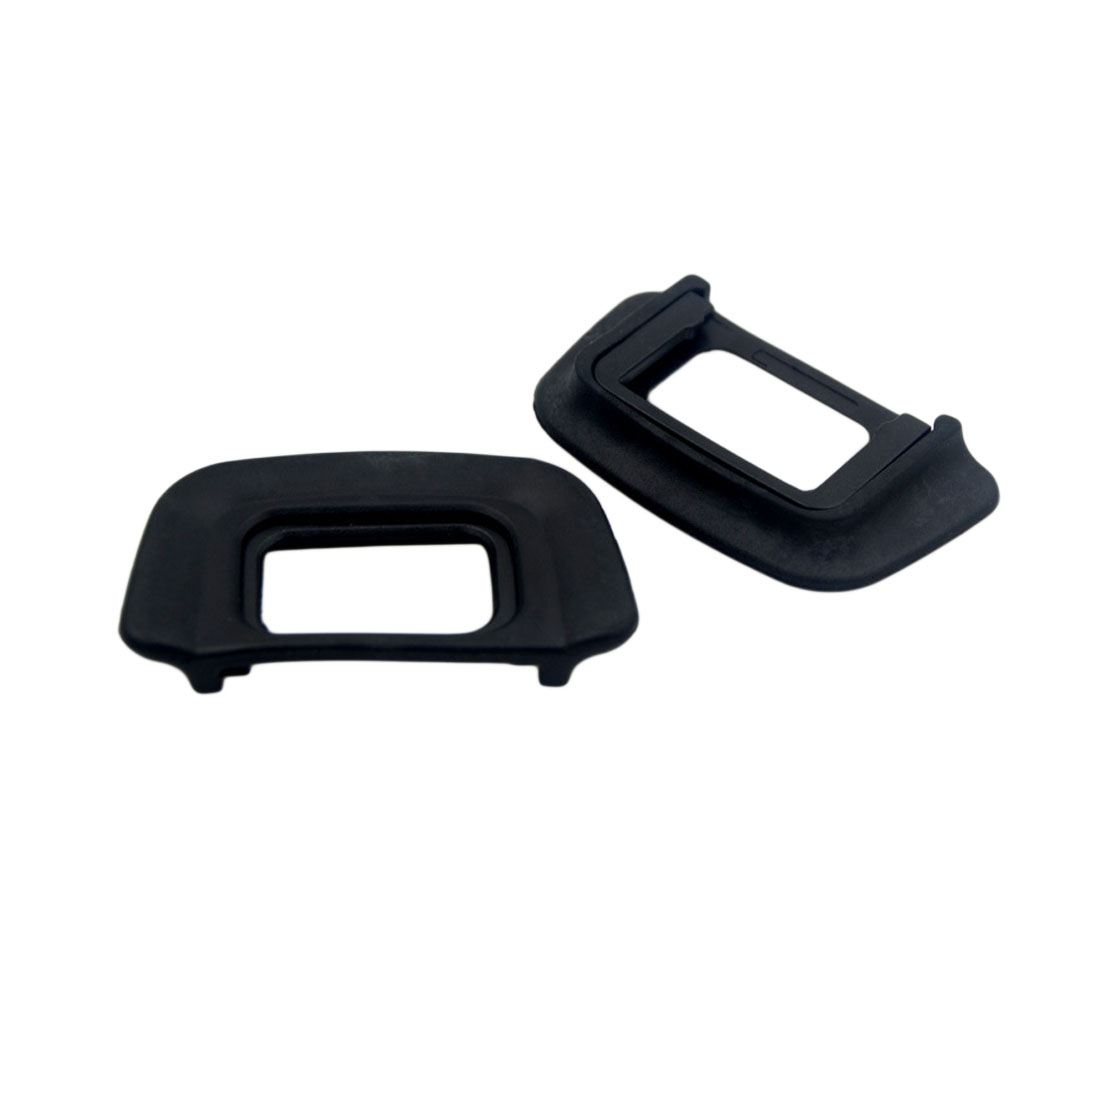 Image 5 - HONGDAK High Quality 2pcs DK 20 Rubber Eye Cup Eyepiece Eyecup For NIKON D5100 D3100 D3000 D50 D60 D70S D3100 D3200 D5200 D3300-in Photo Studio Accessories from Consumer Electronics